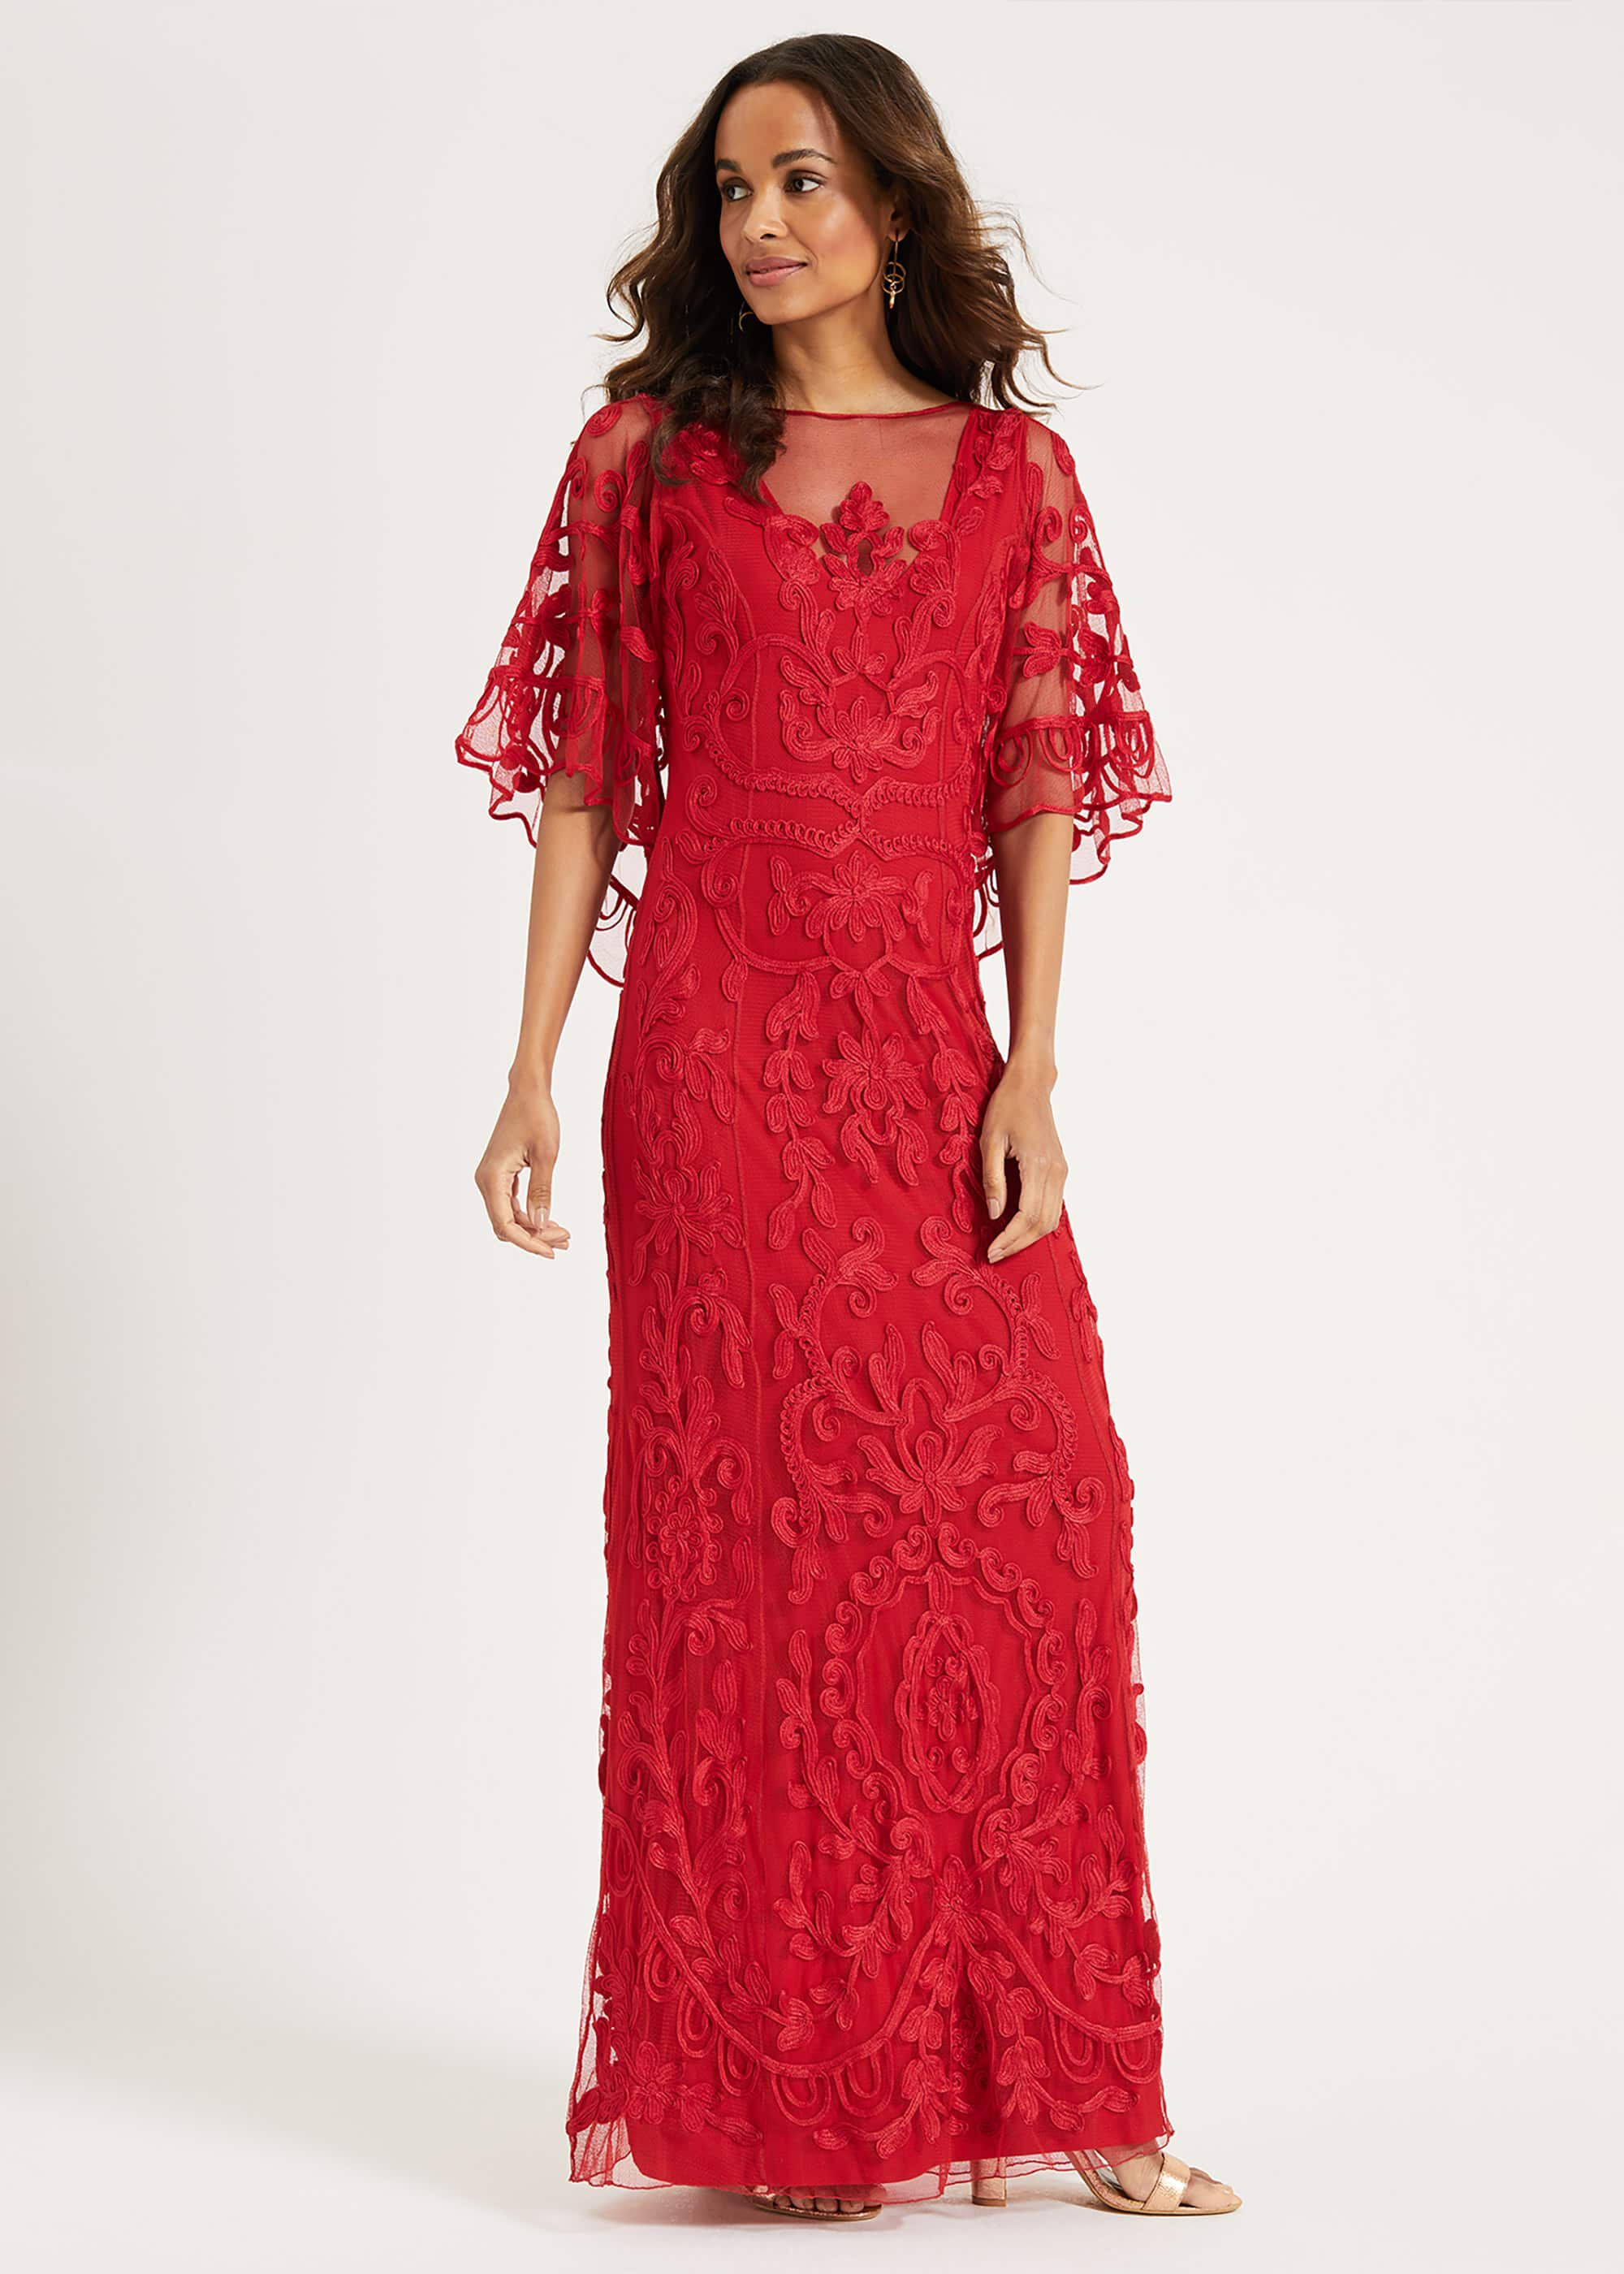 Phase Eight Aviana Tapework Lace Maxi Dress, Red, Maxi